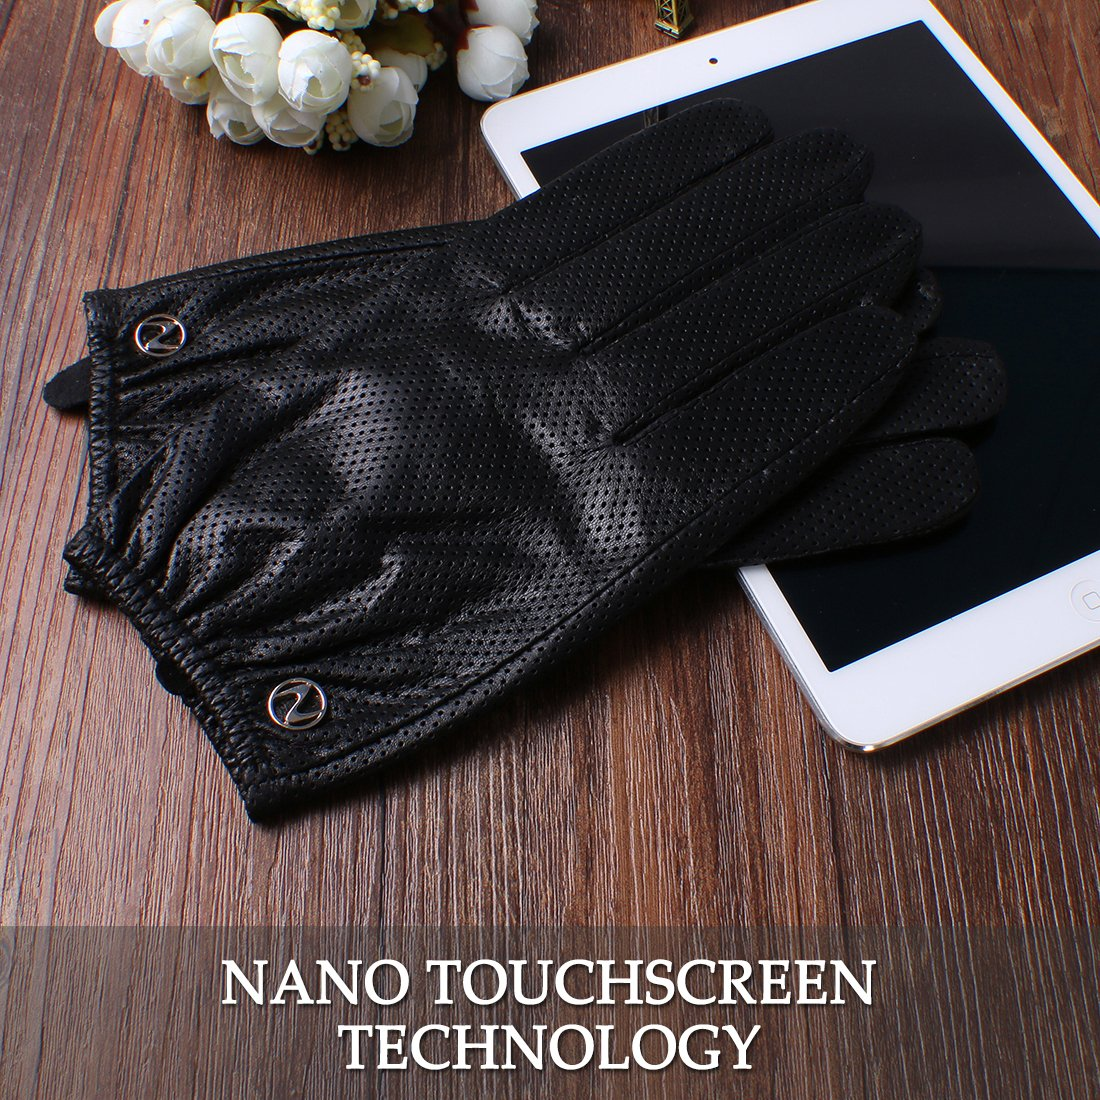 Nappaglo Men's Leather Gloves Lambskin Touchscreen Winter Warm Perforated Driving Motorcycle Mittens (M (Palm Girth:8''-8.5''), Black (Touchscreen)) by Nappaglo (Image #6)